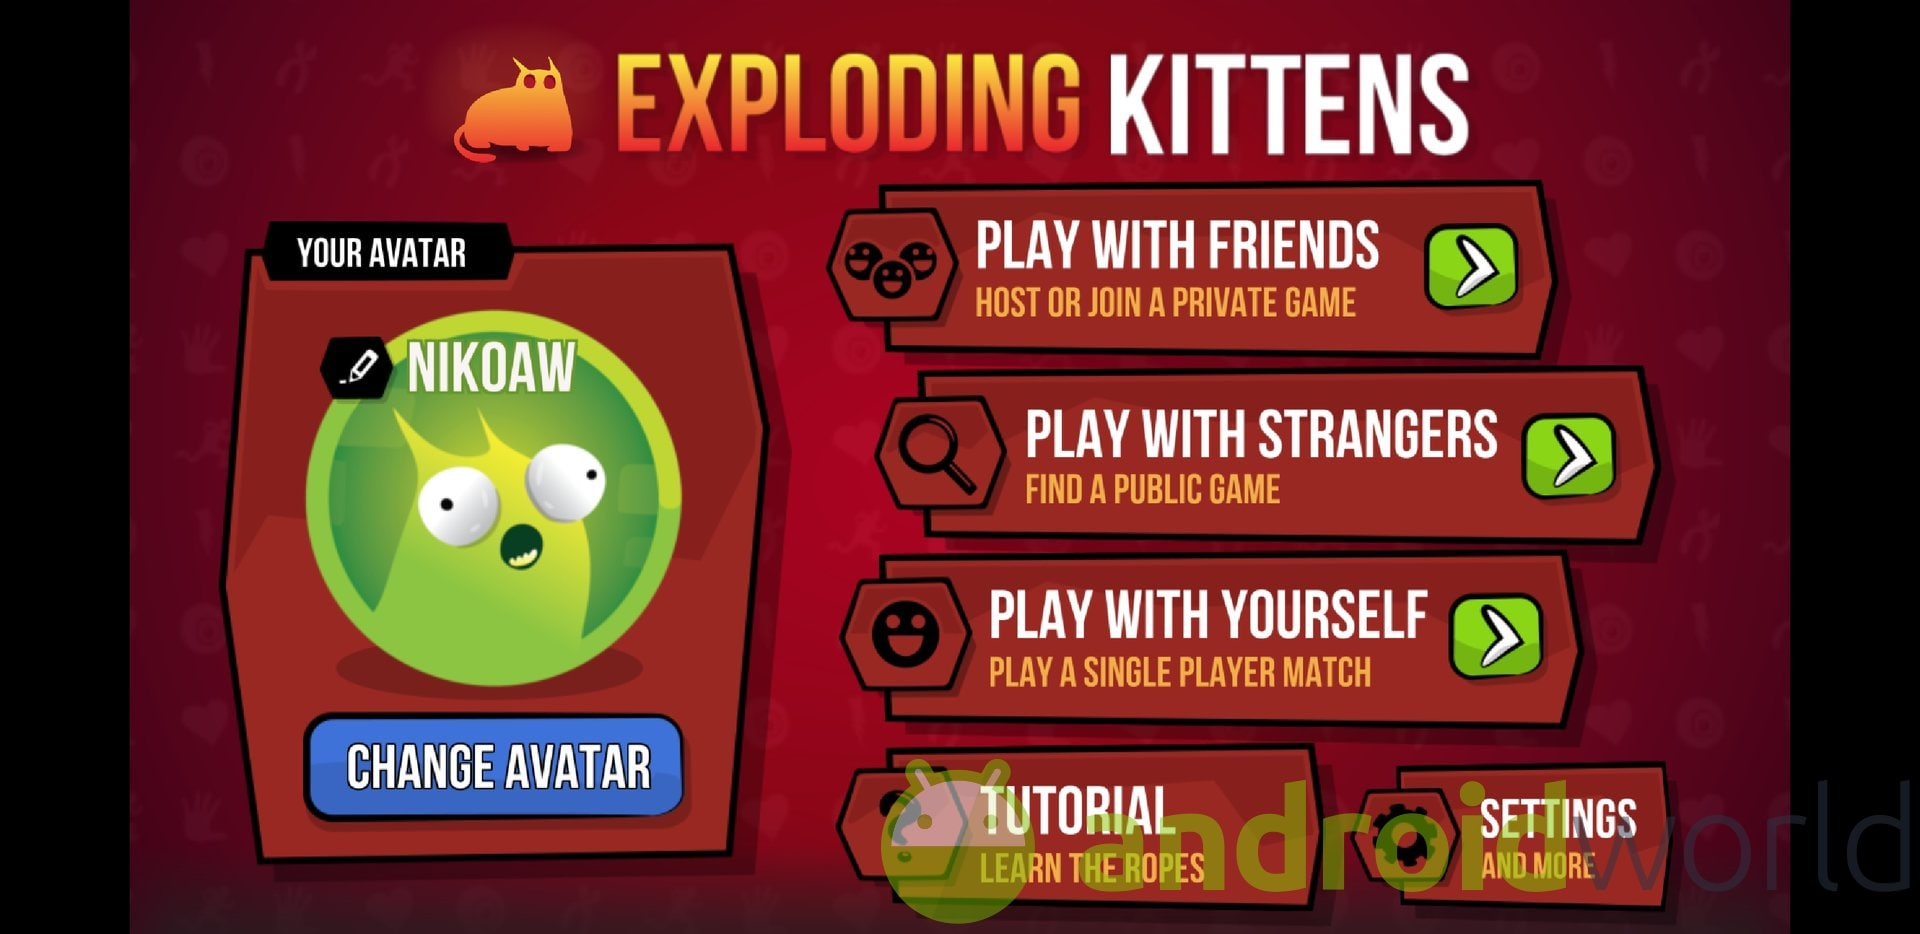 exploding kittens single player (2).jpg